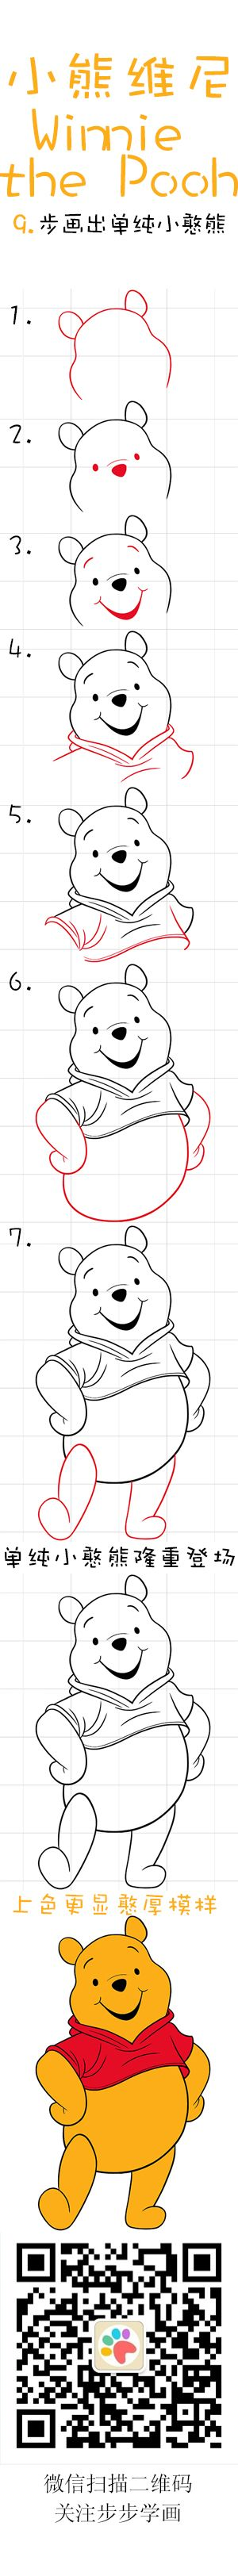 Learn how to draw Winnie the Pooh